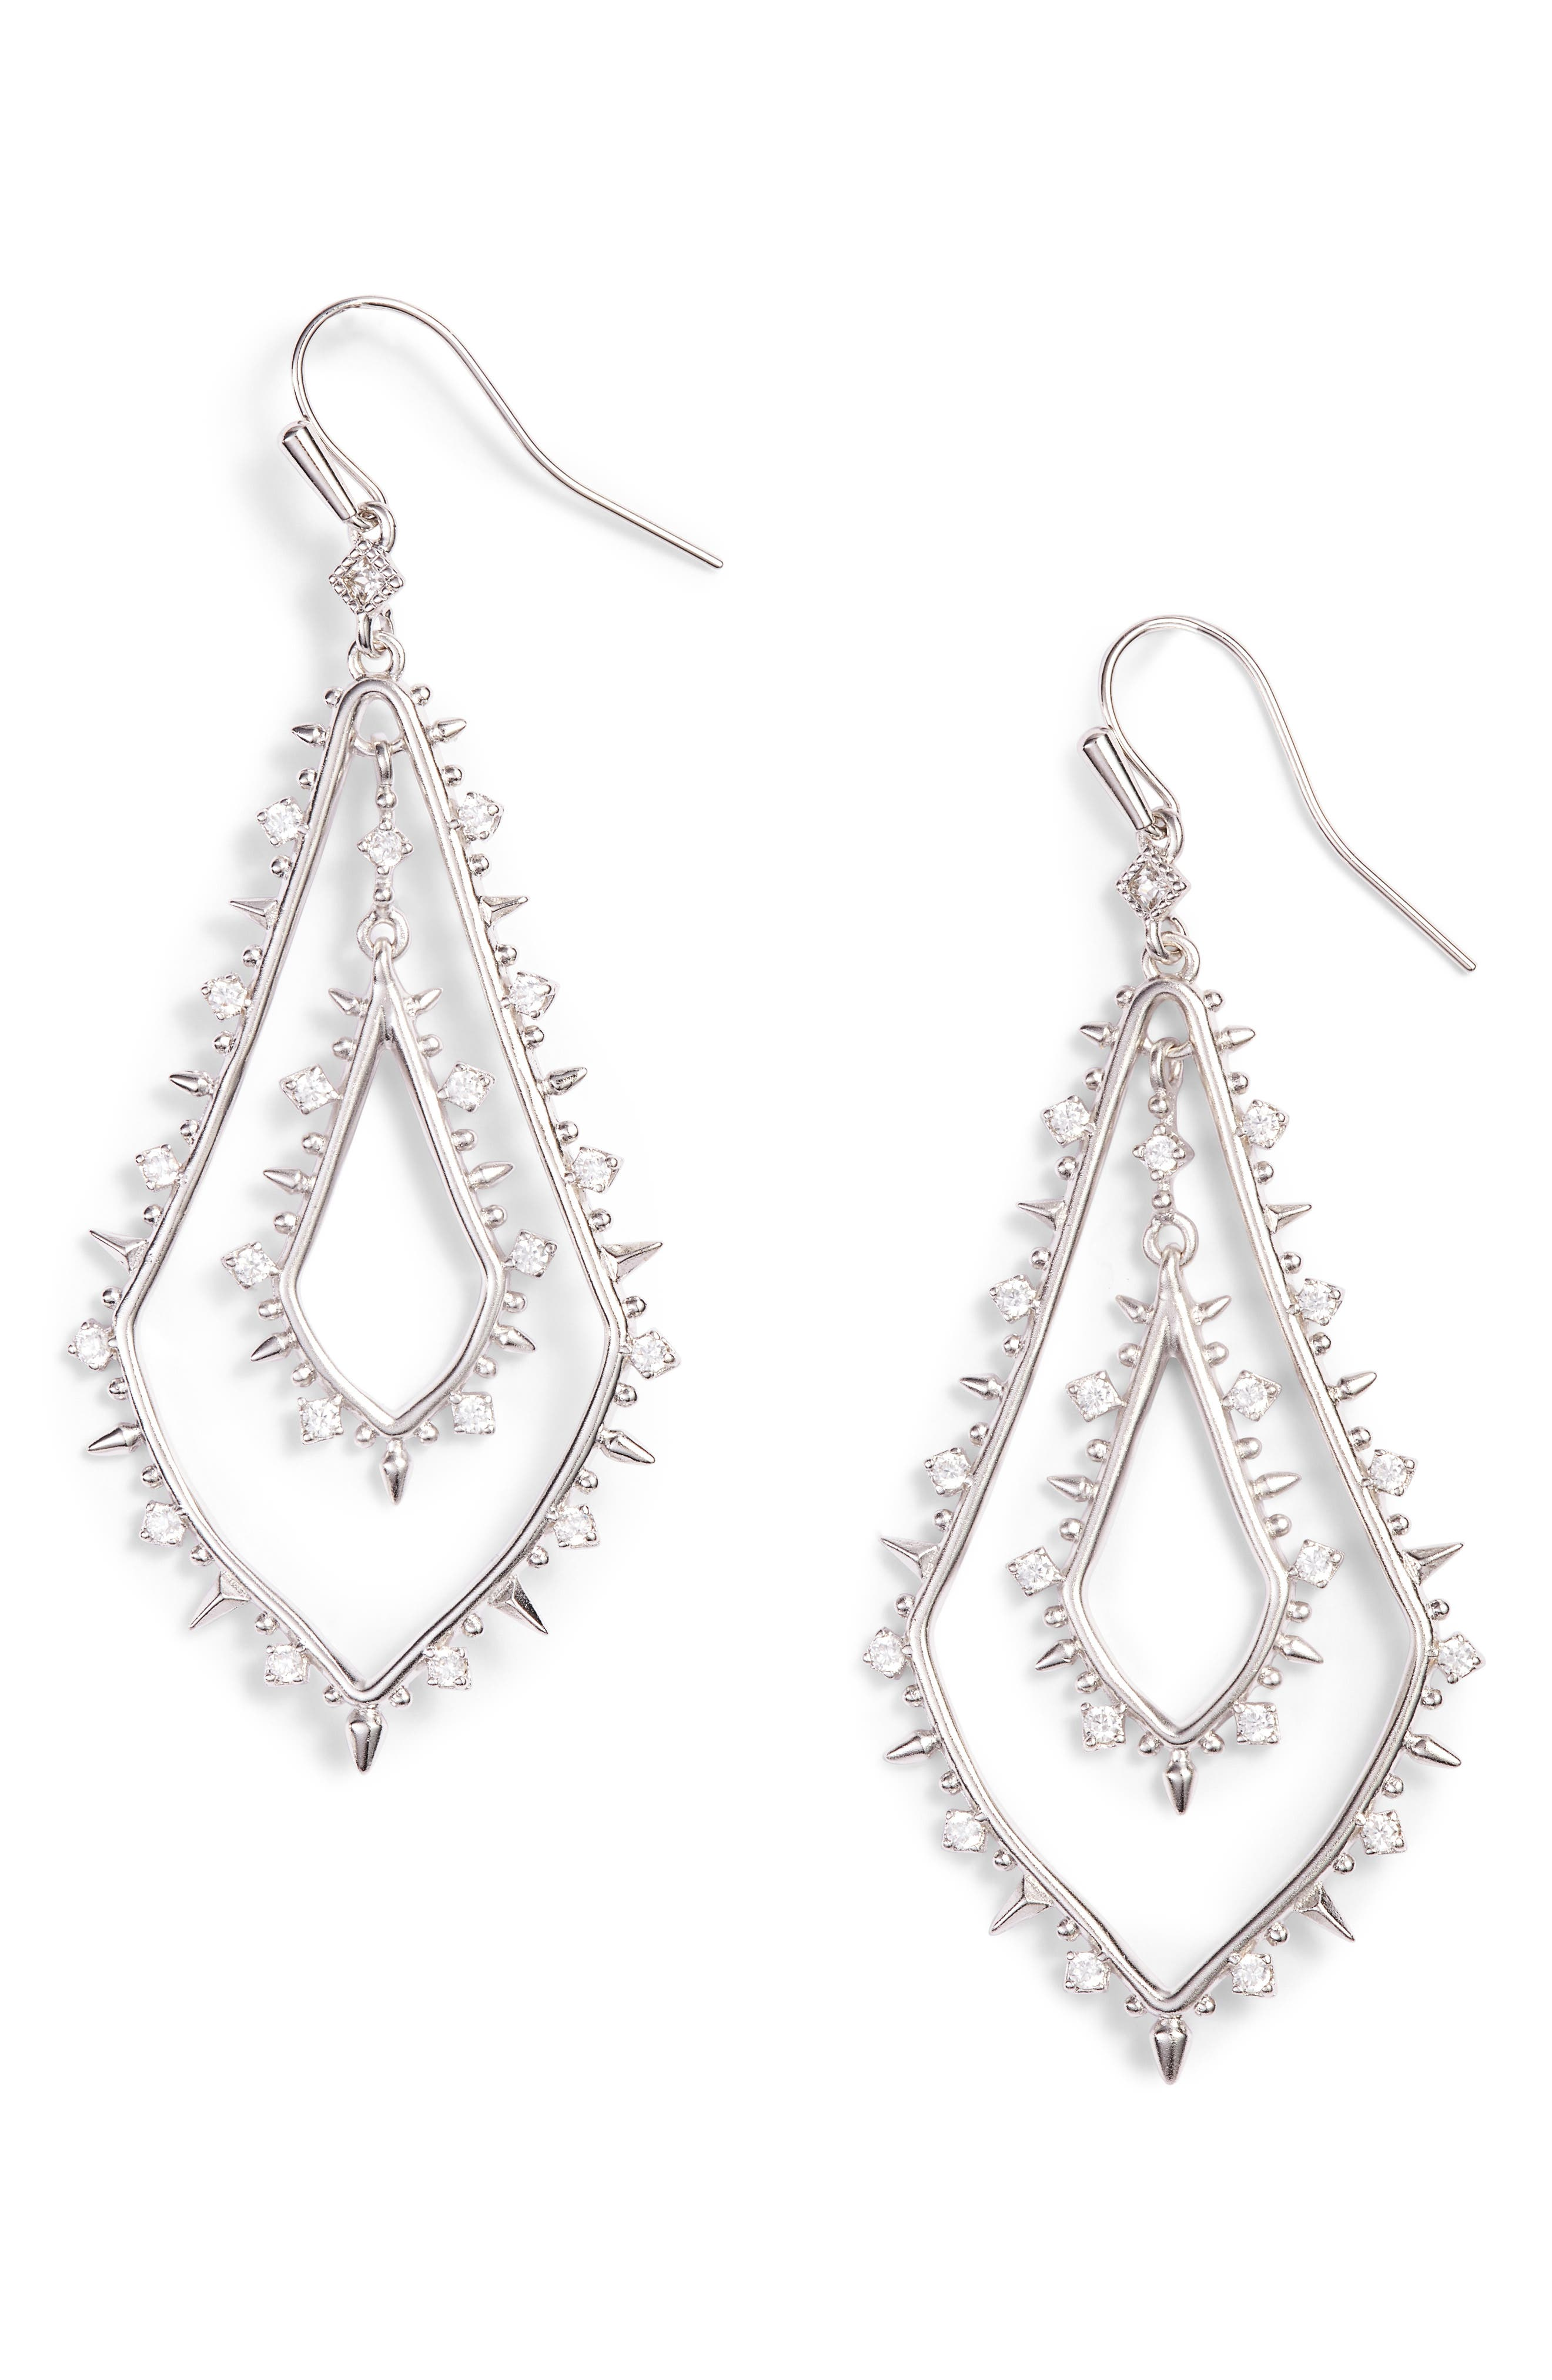 Alice Drop Earrings,                         Main,                         color, White/ Silver